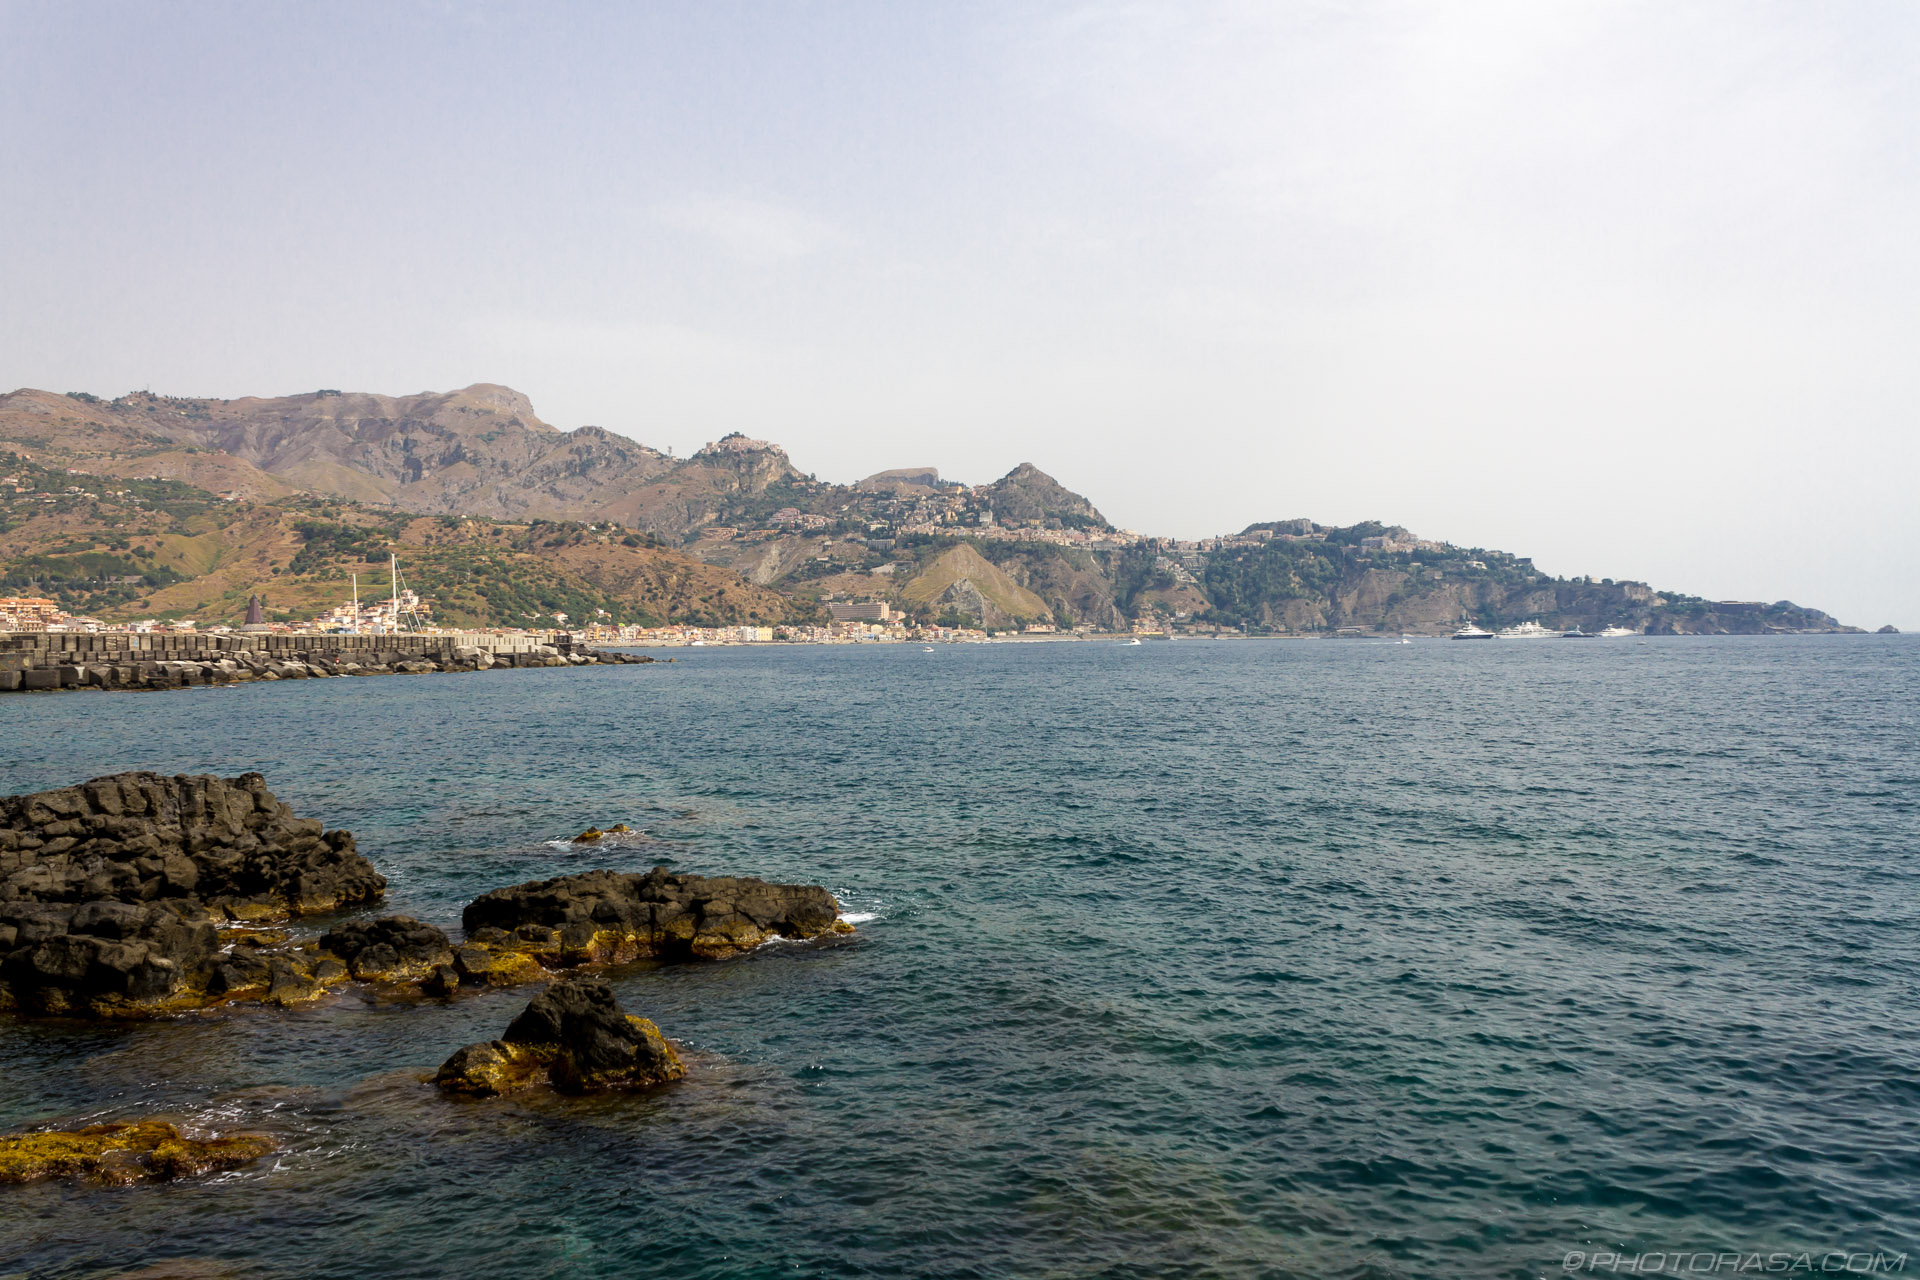 http://photorasa.com/places/giardini-naxos/attachment/giardini-naxos-coast-and-hills/